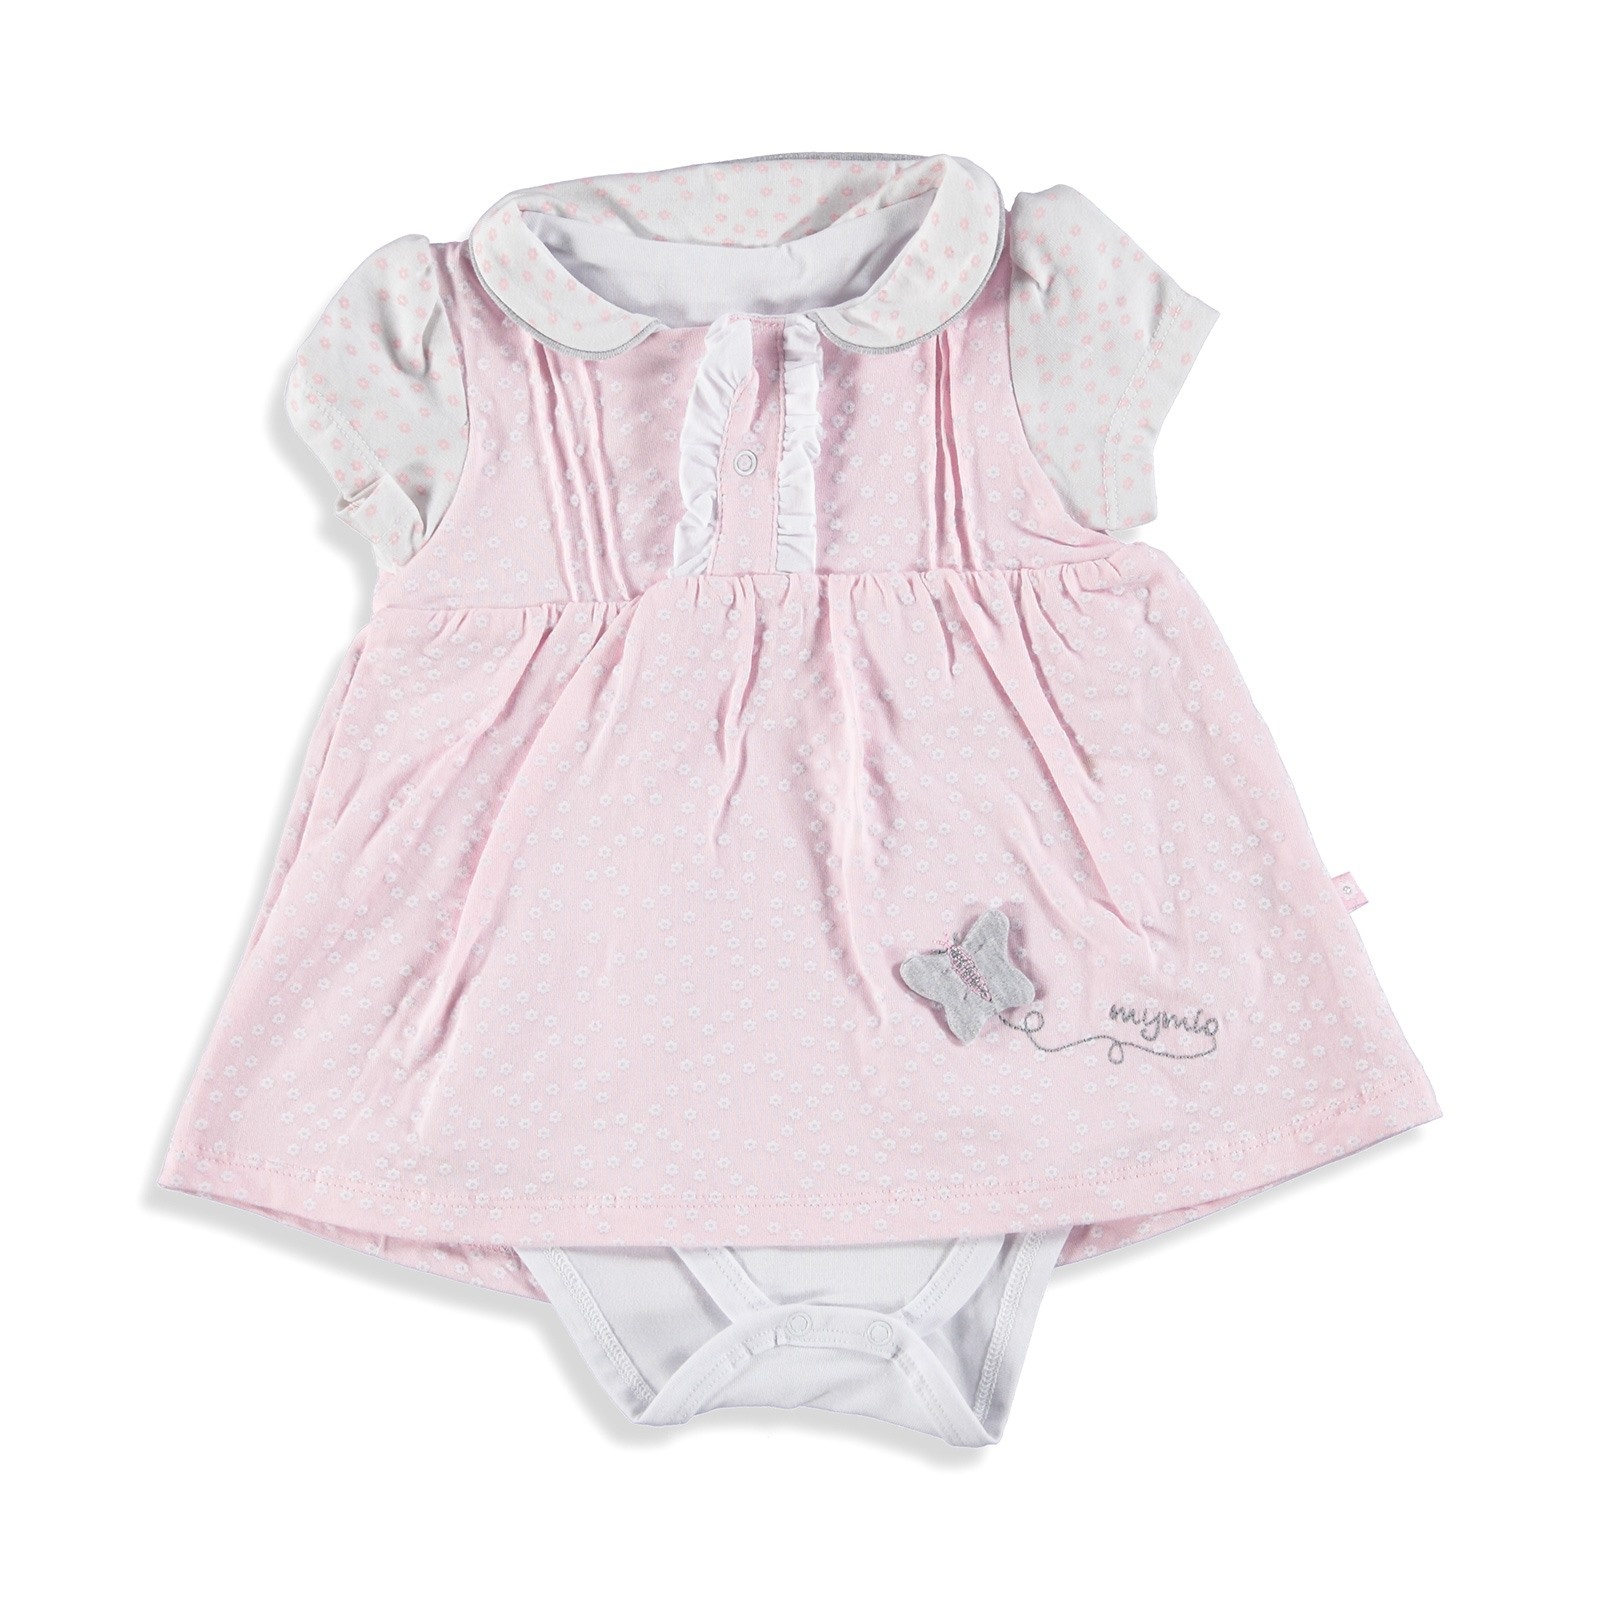 Ebebek Mymio Flamingo Baby Girl Interlock Dress Bodysuit